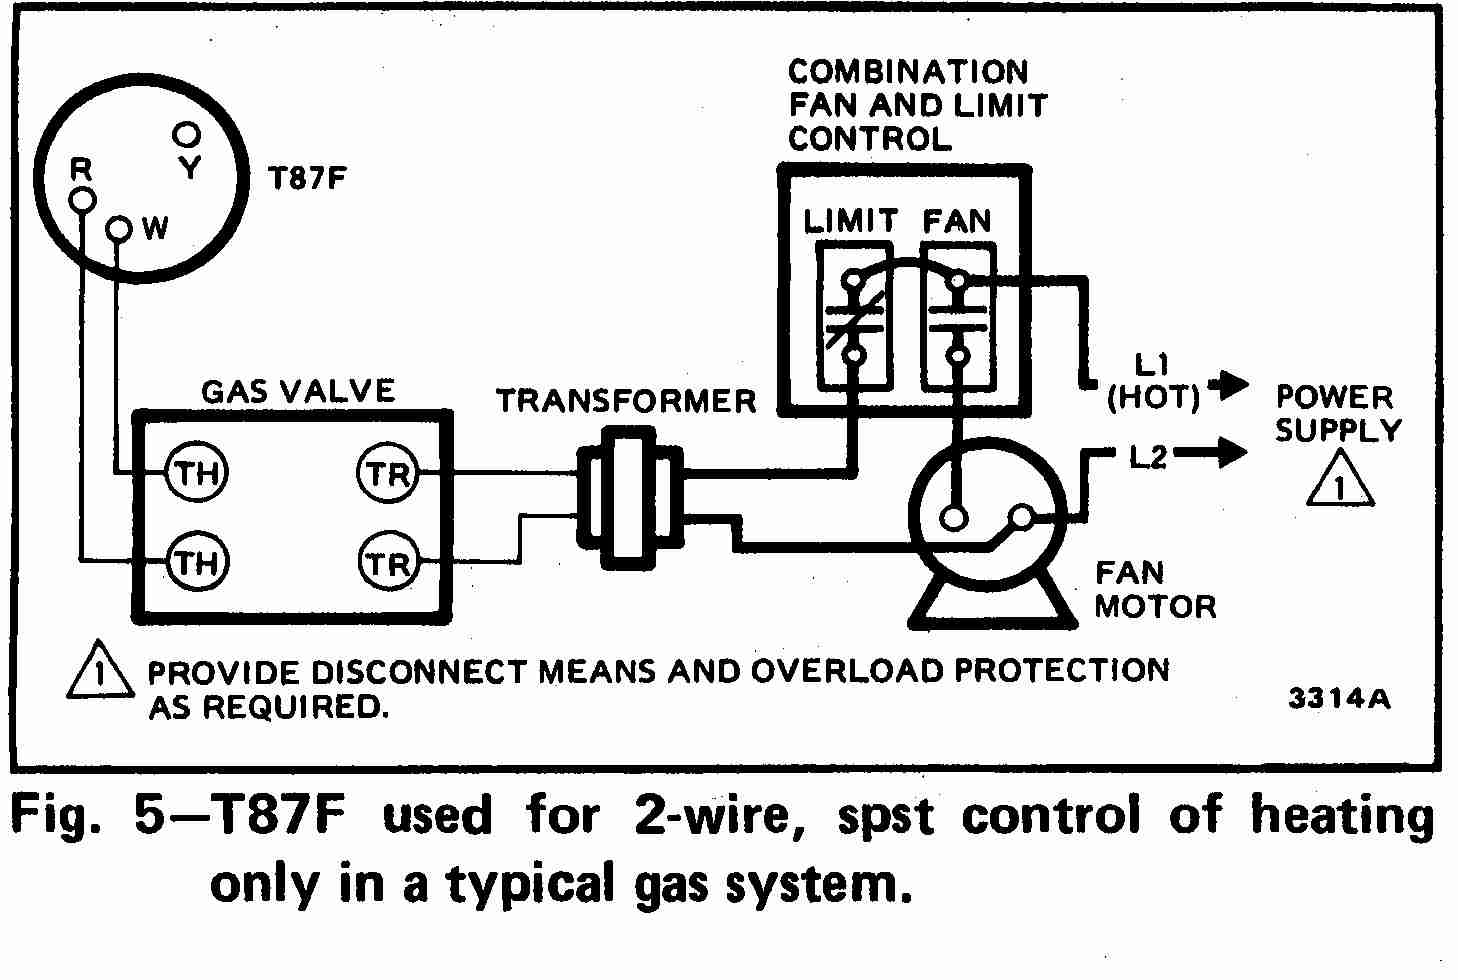 TT_T87F_0002_2Wg_DJF room thermostat wiring diagrams for hvac systems janitrol thermostat wiring diagram at reclaimingppi.co